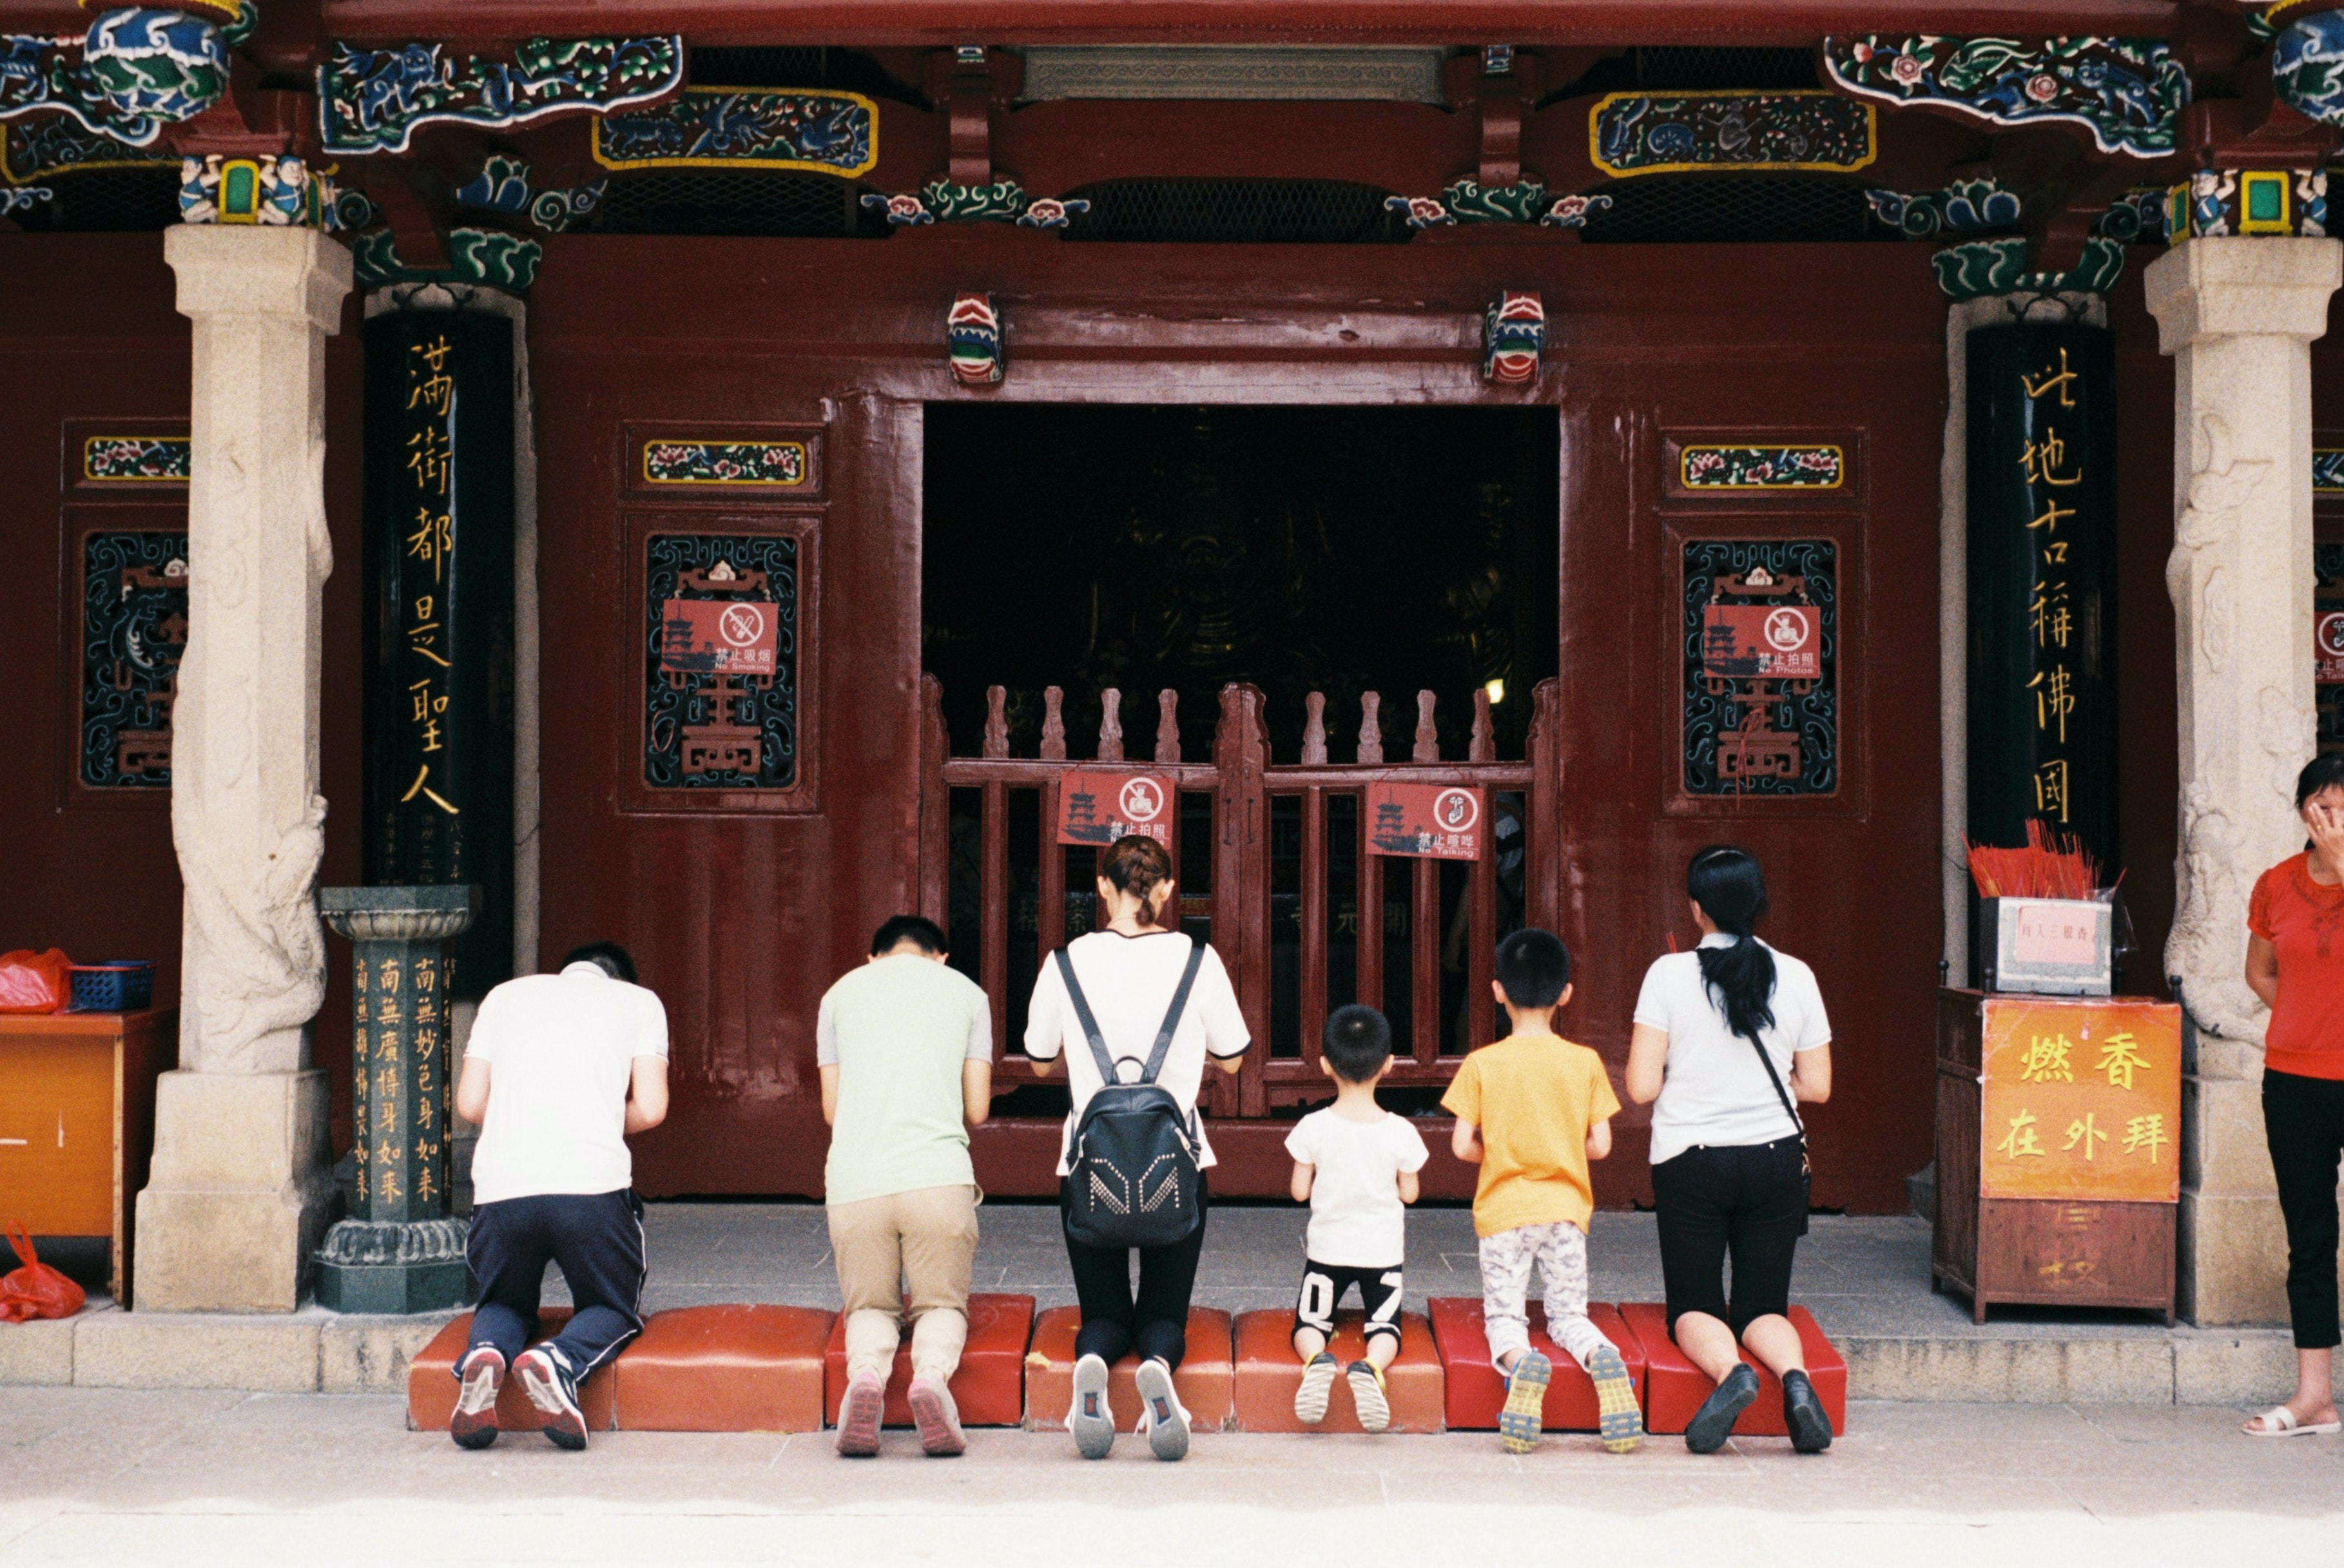 A family praying at an Asian temple